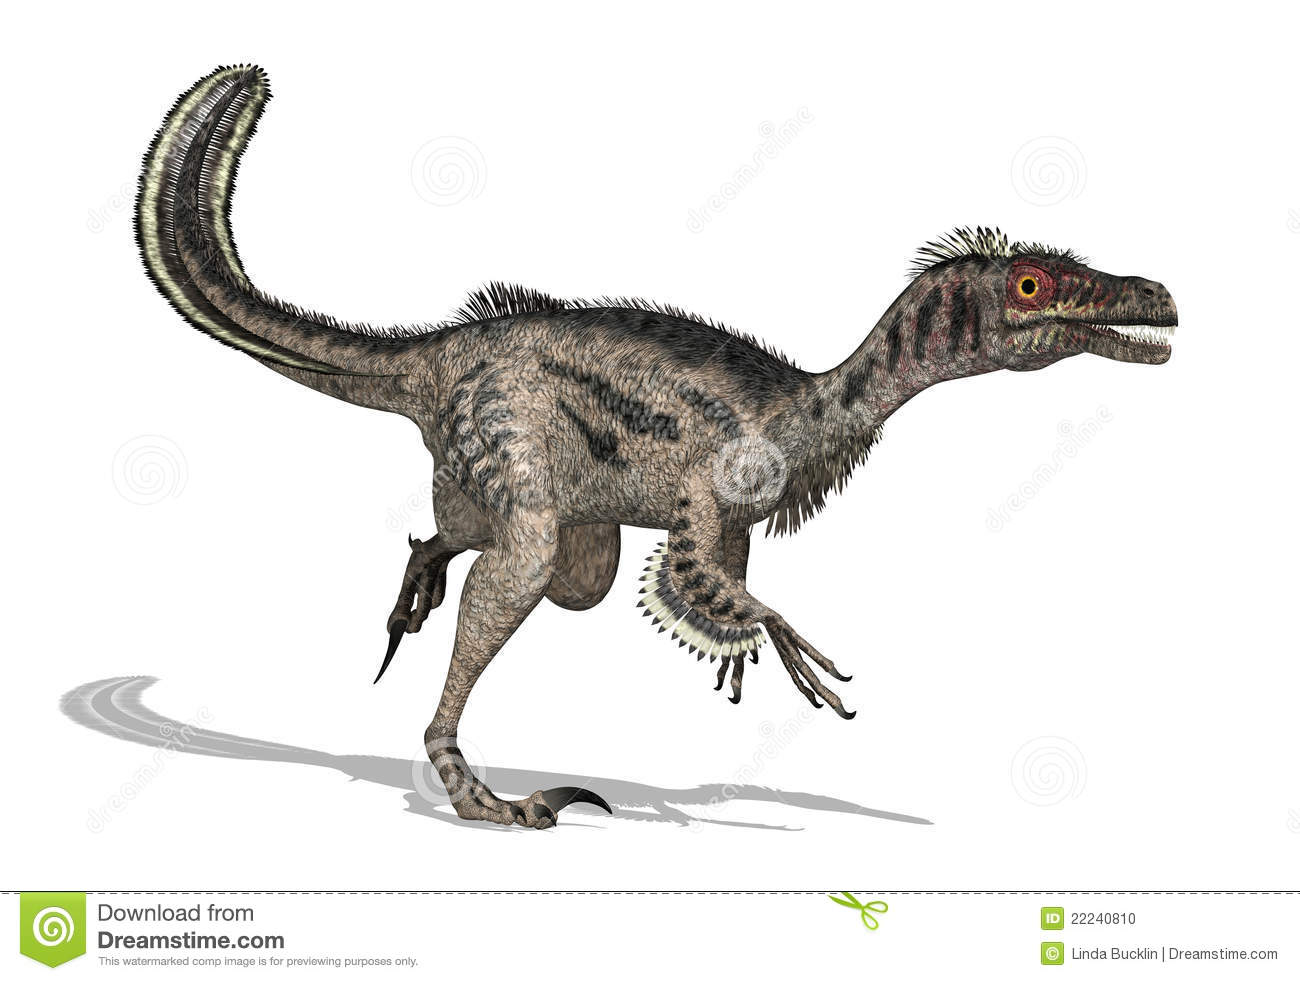 Velociraptor clipart #6, Download drawings